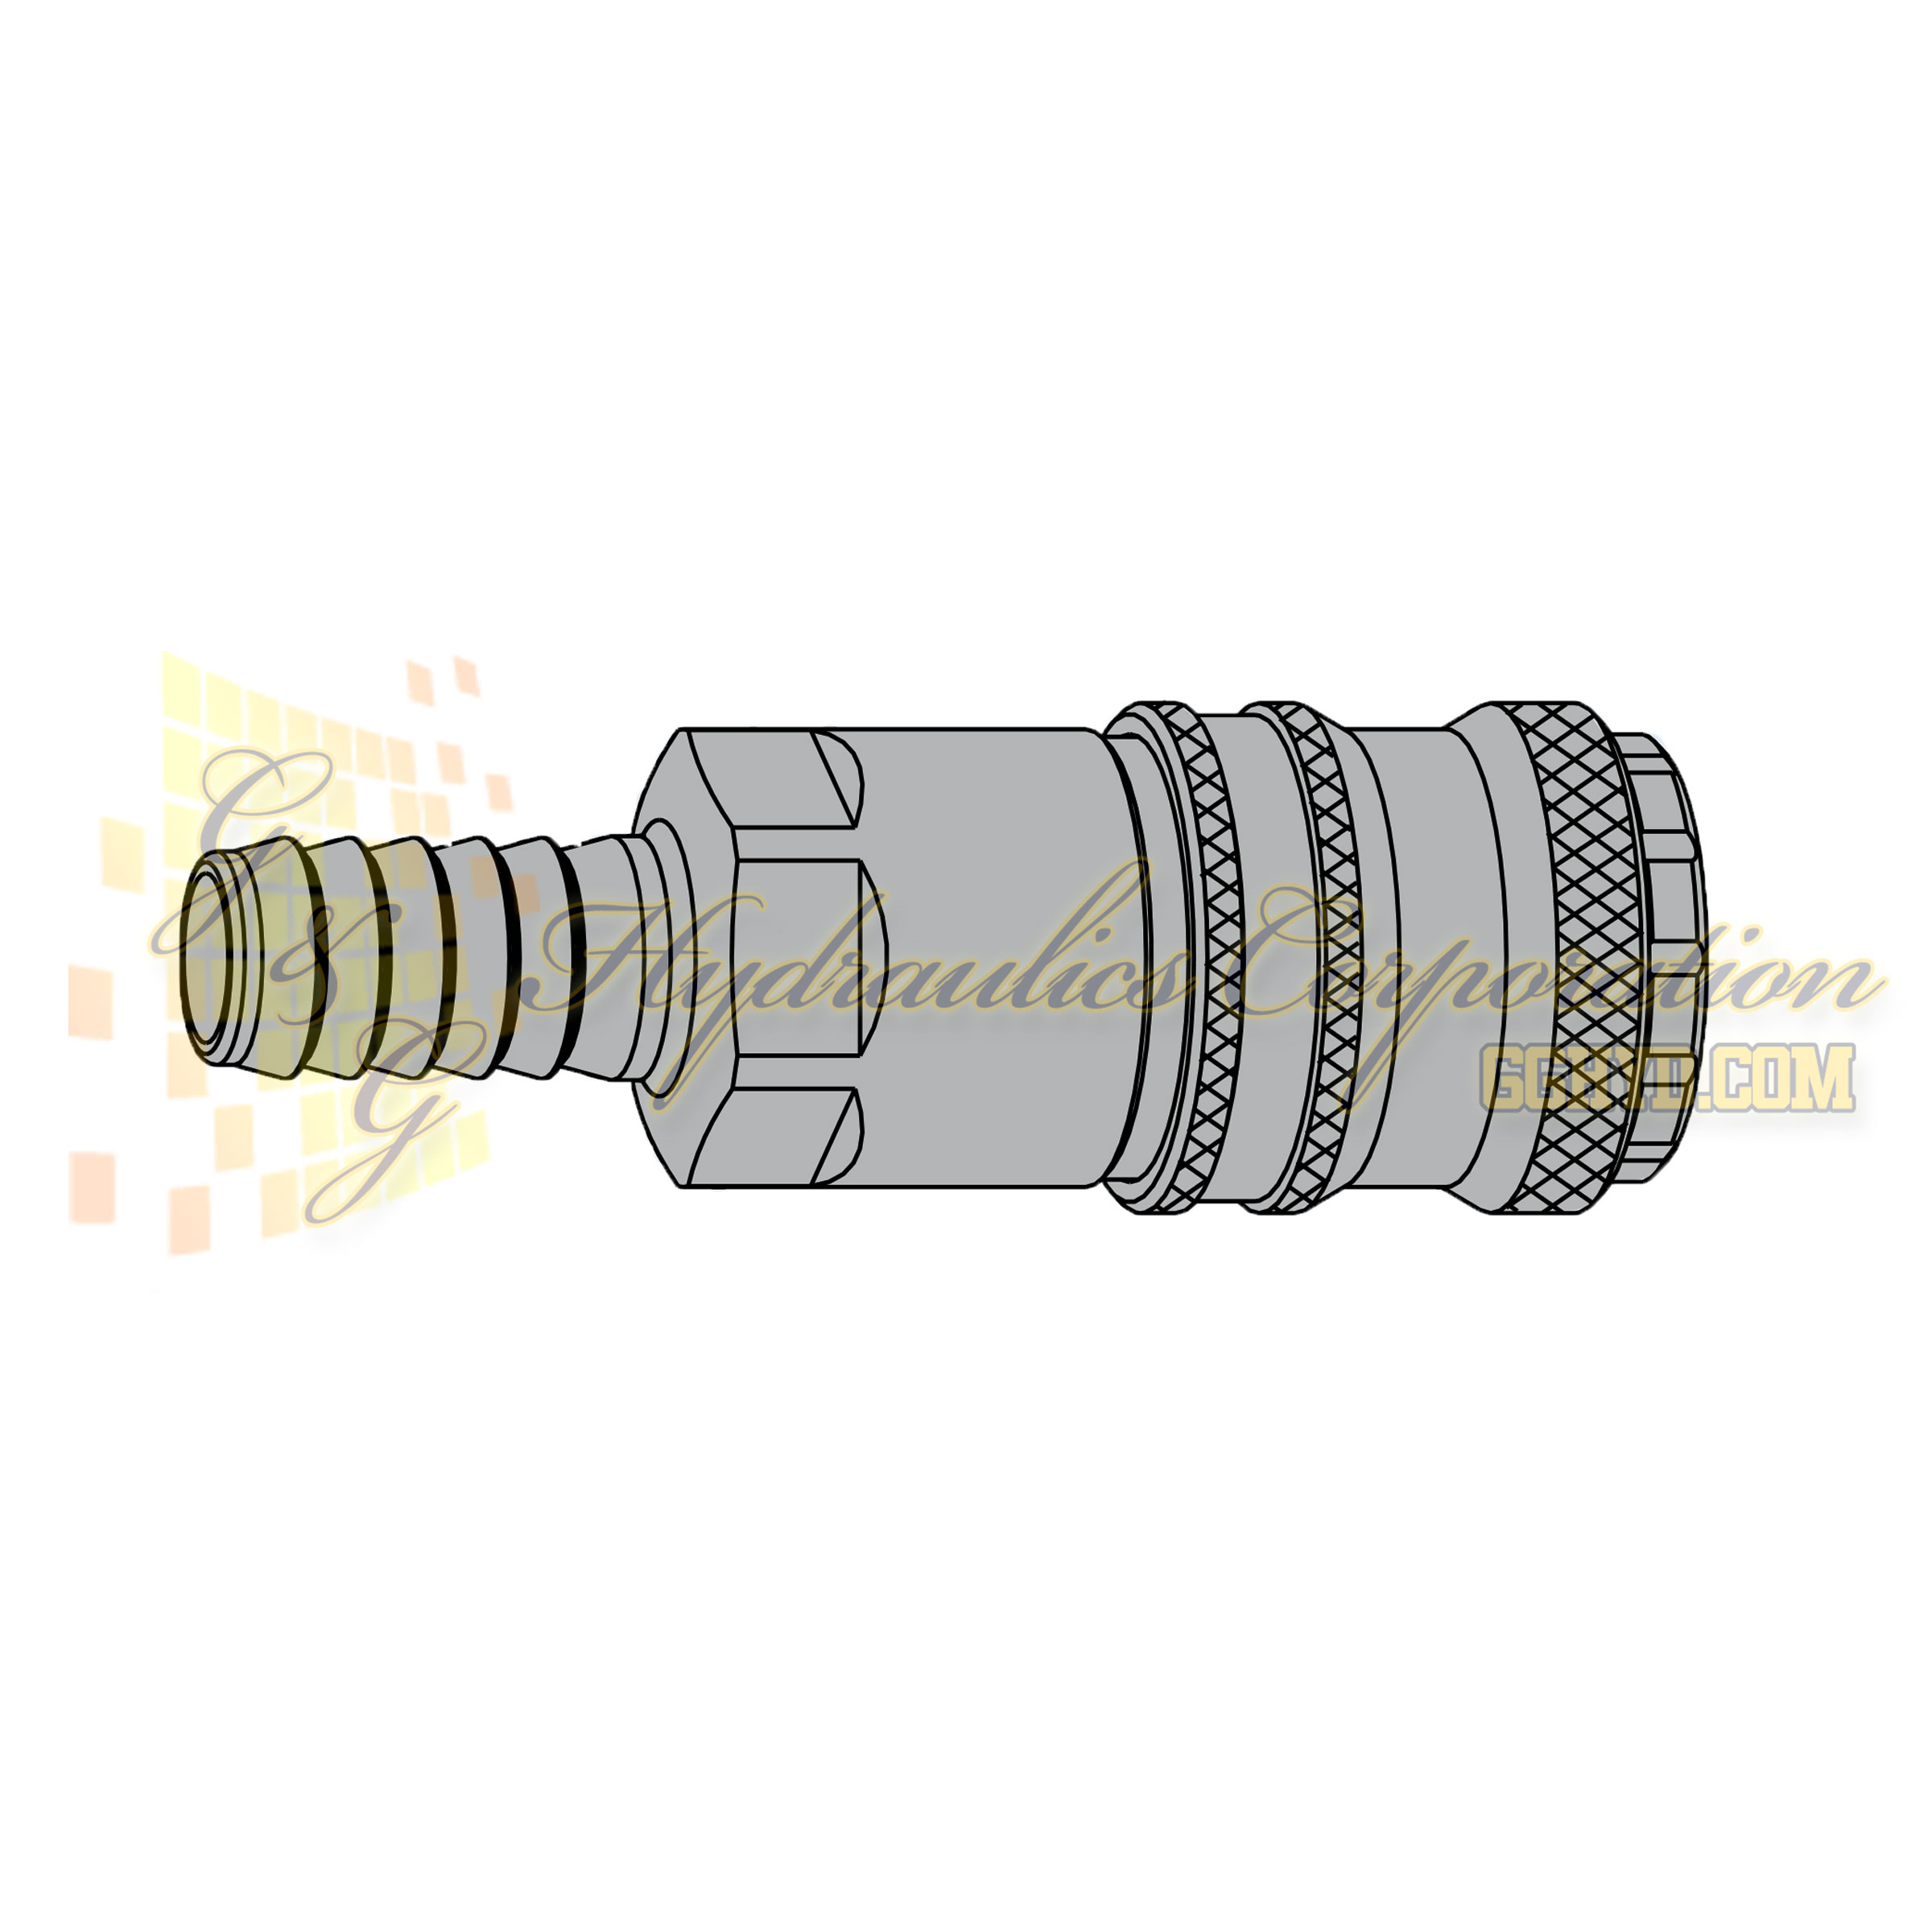 "10-320-1005 CEJN Standard and Vented Safety Coupler, 8mm (5/16"") Hose Connection"